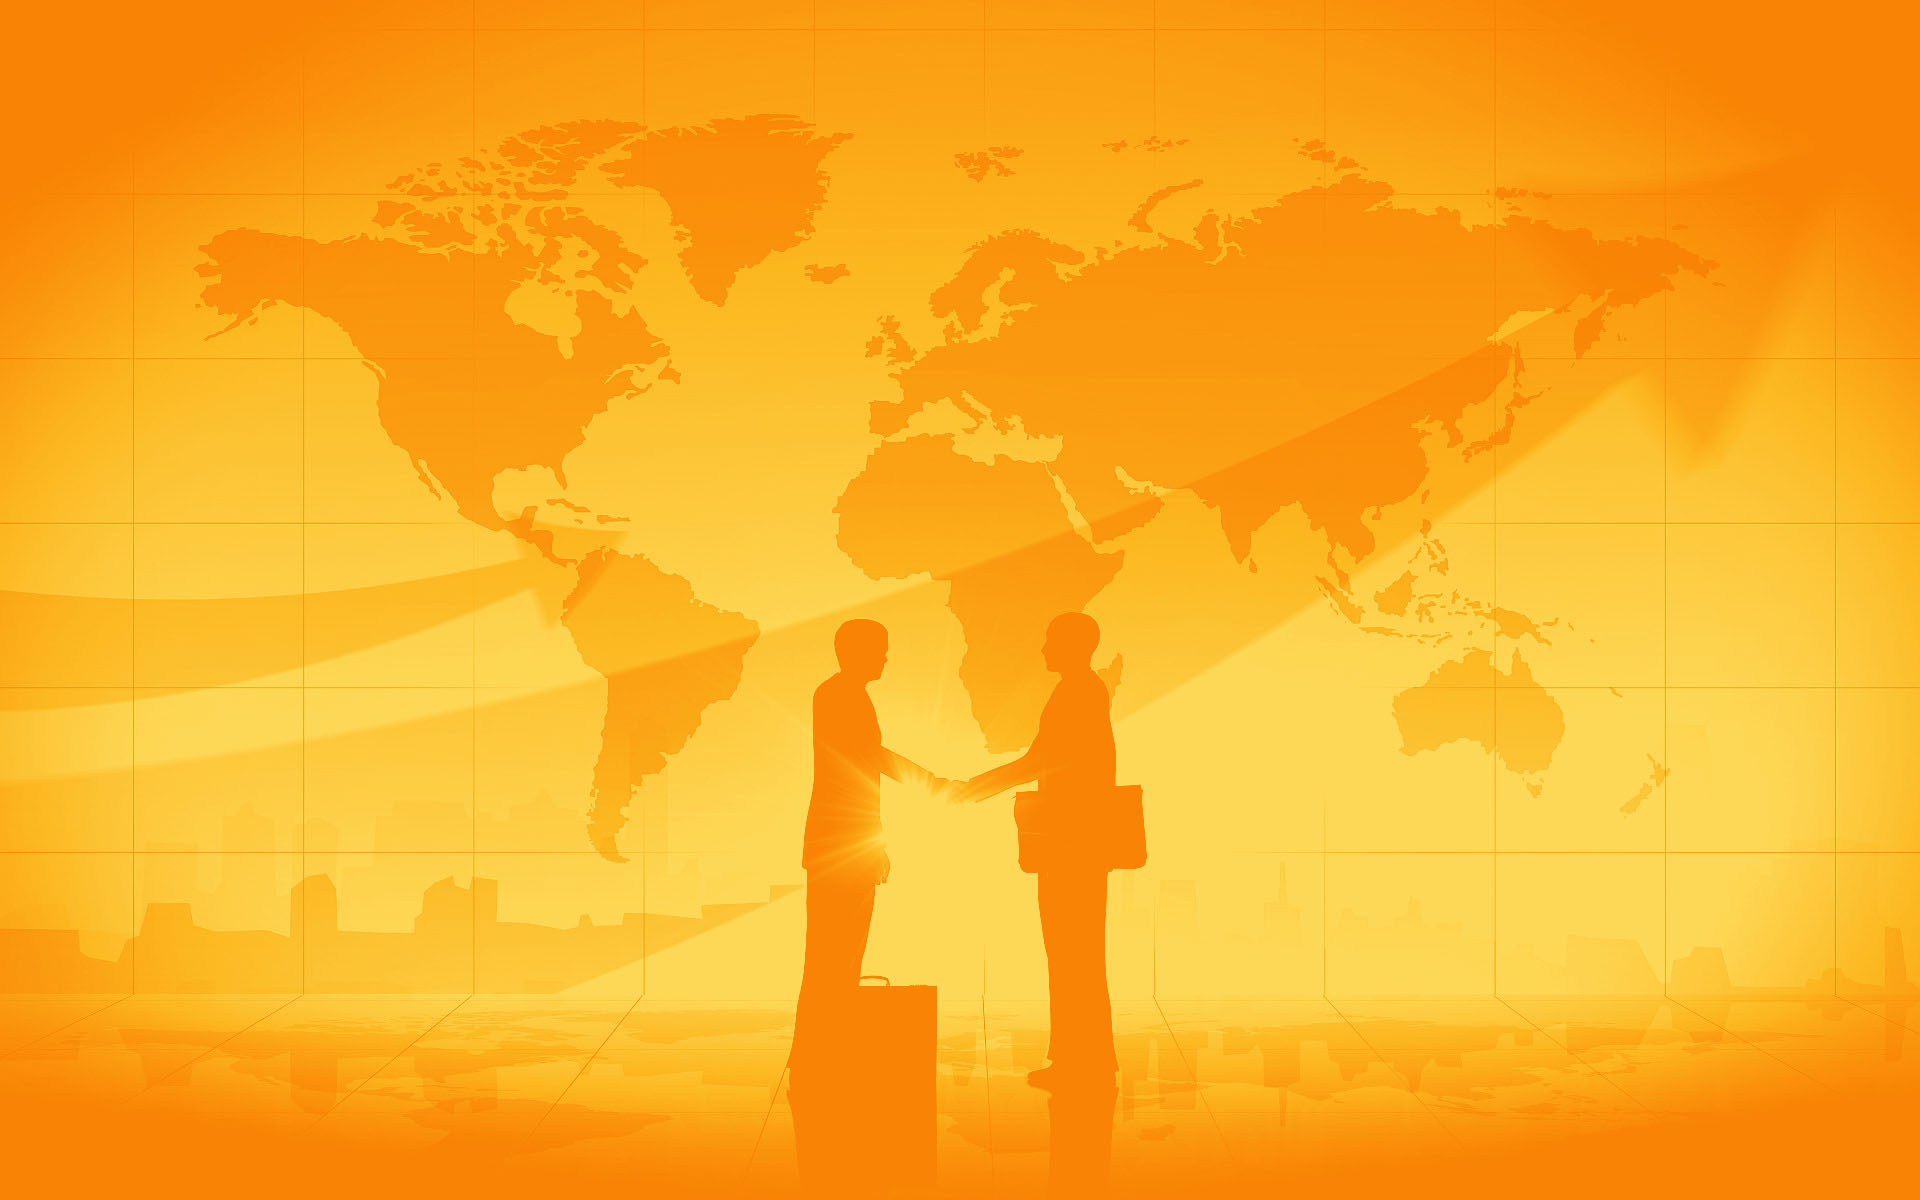 Business-Man-Shake-Hand-Silhouettes-City-World-Map